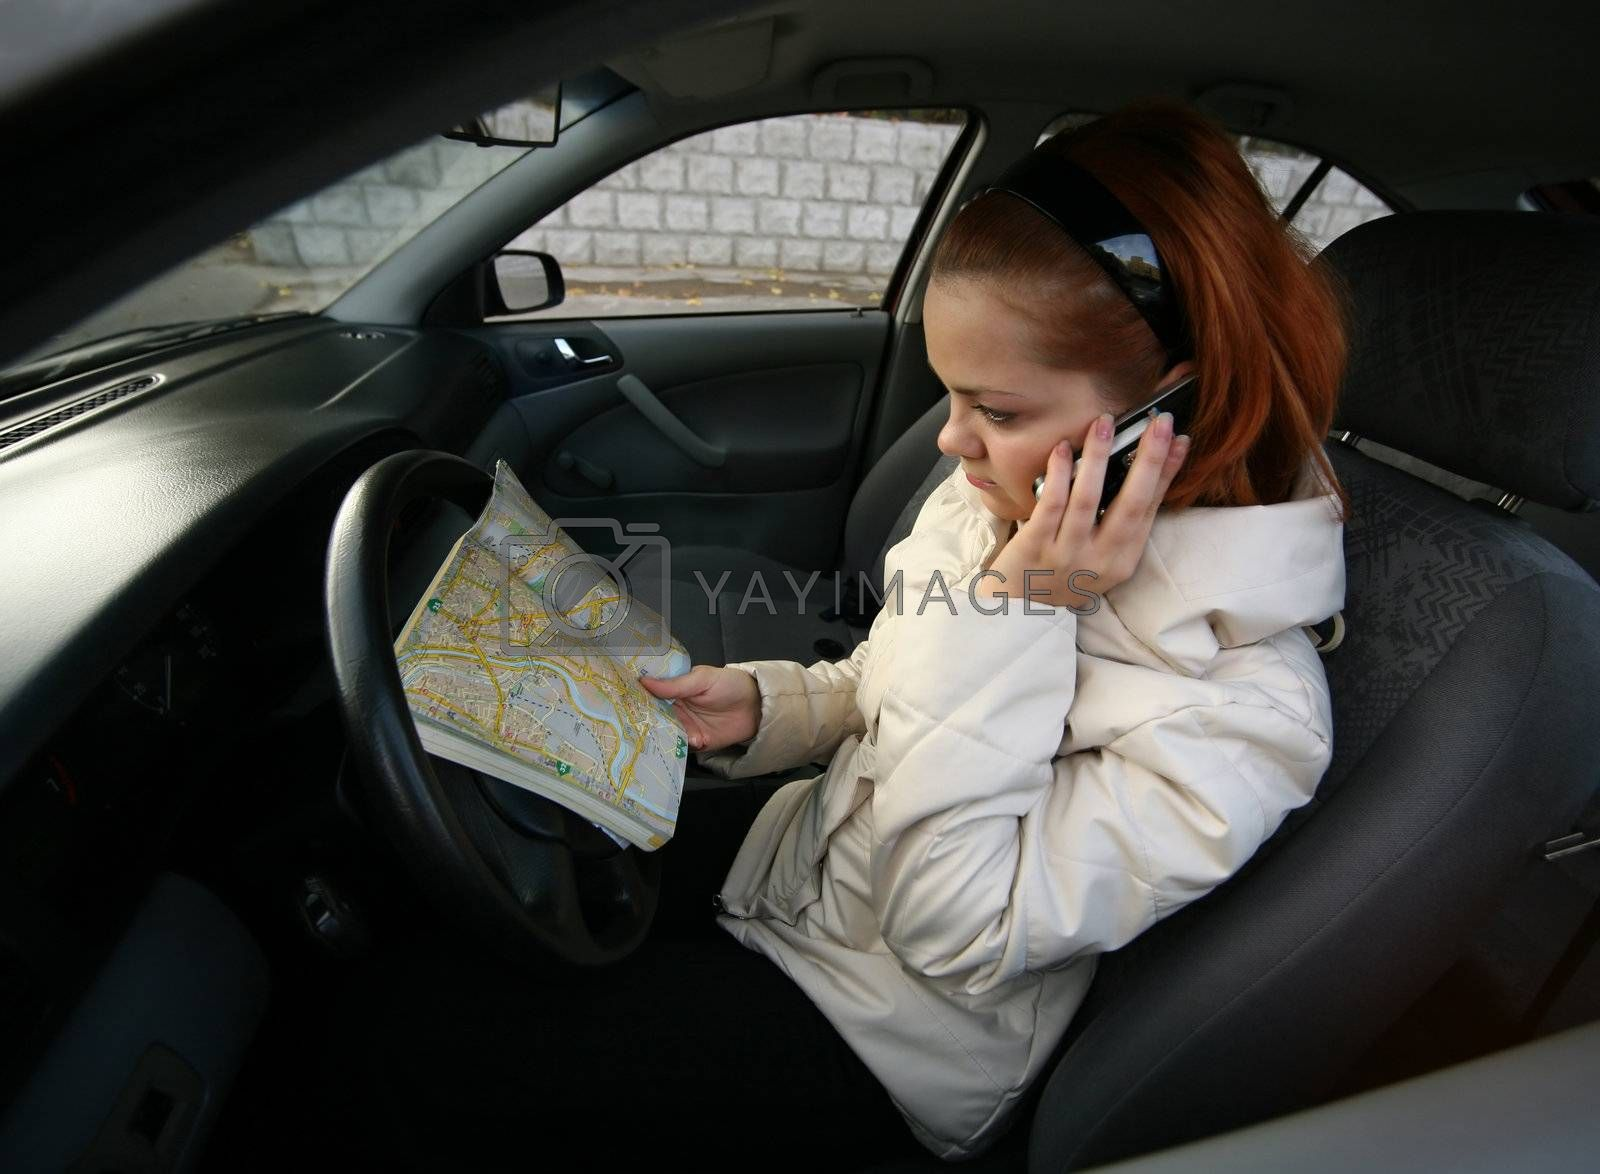 The young girl with a map of streets and the phone in the automobile